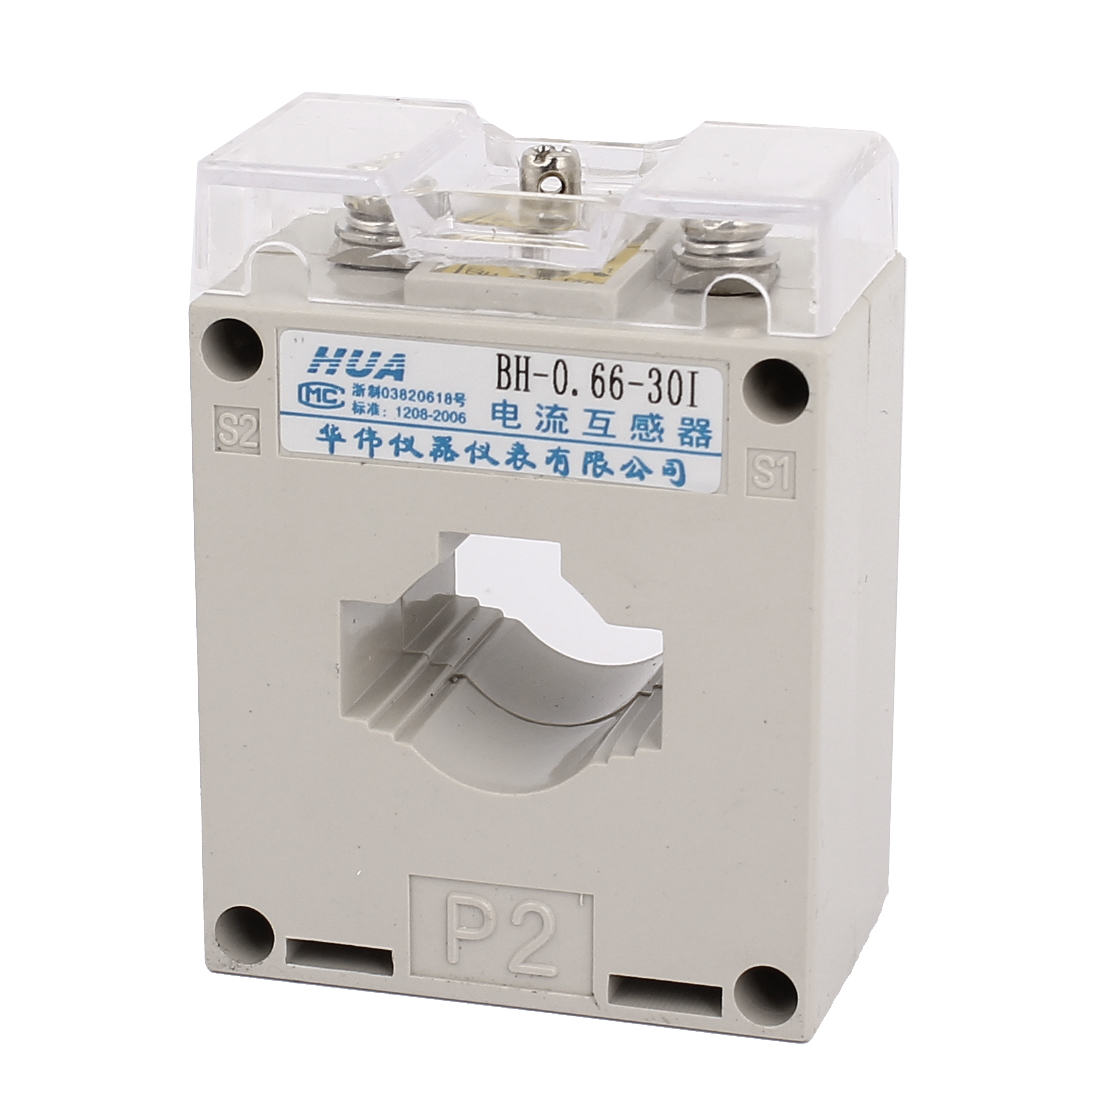 BH-0.66-301 Type Rated Voltage 660V Conductor Through 1T 50/5A Current Transformer